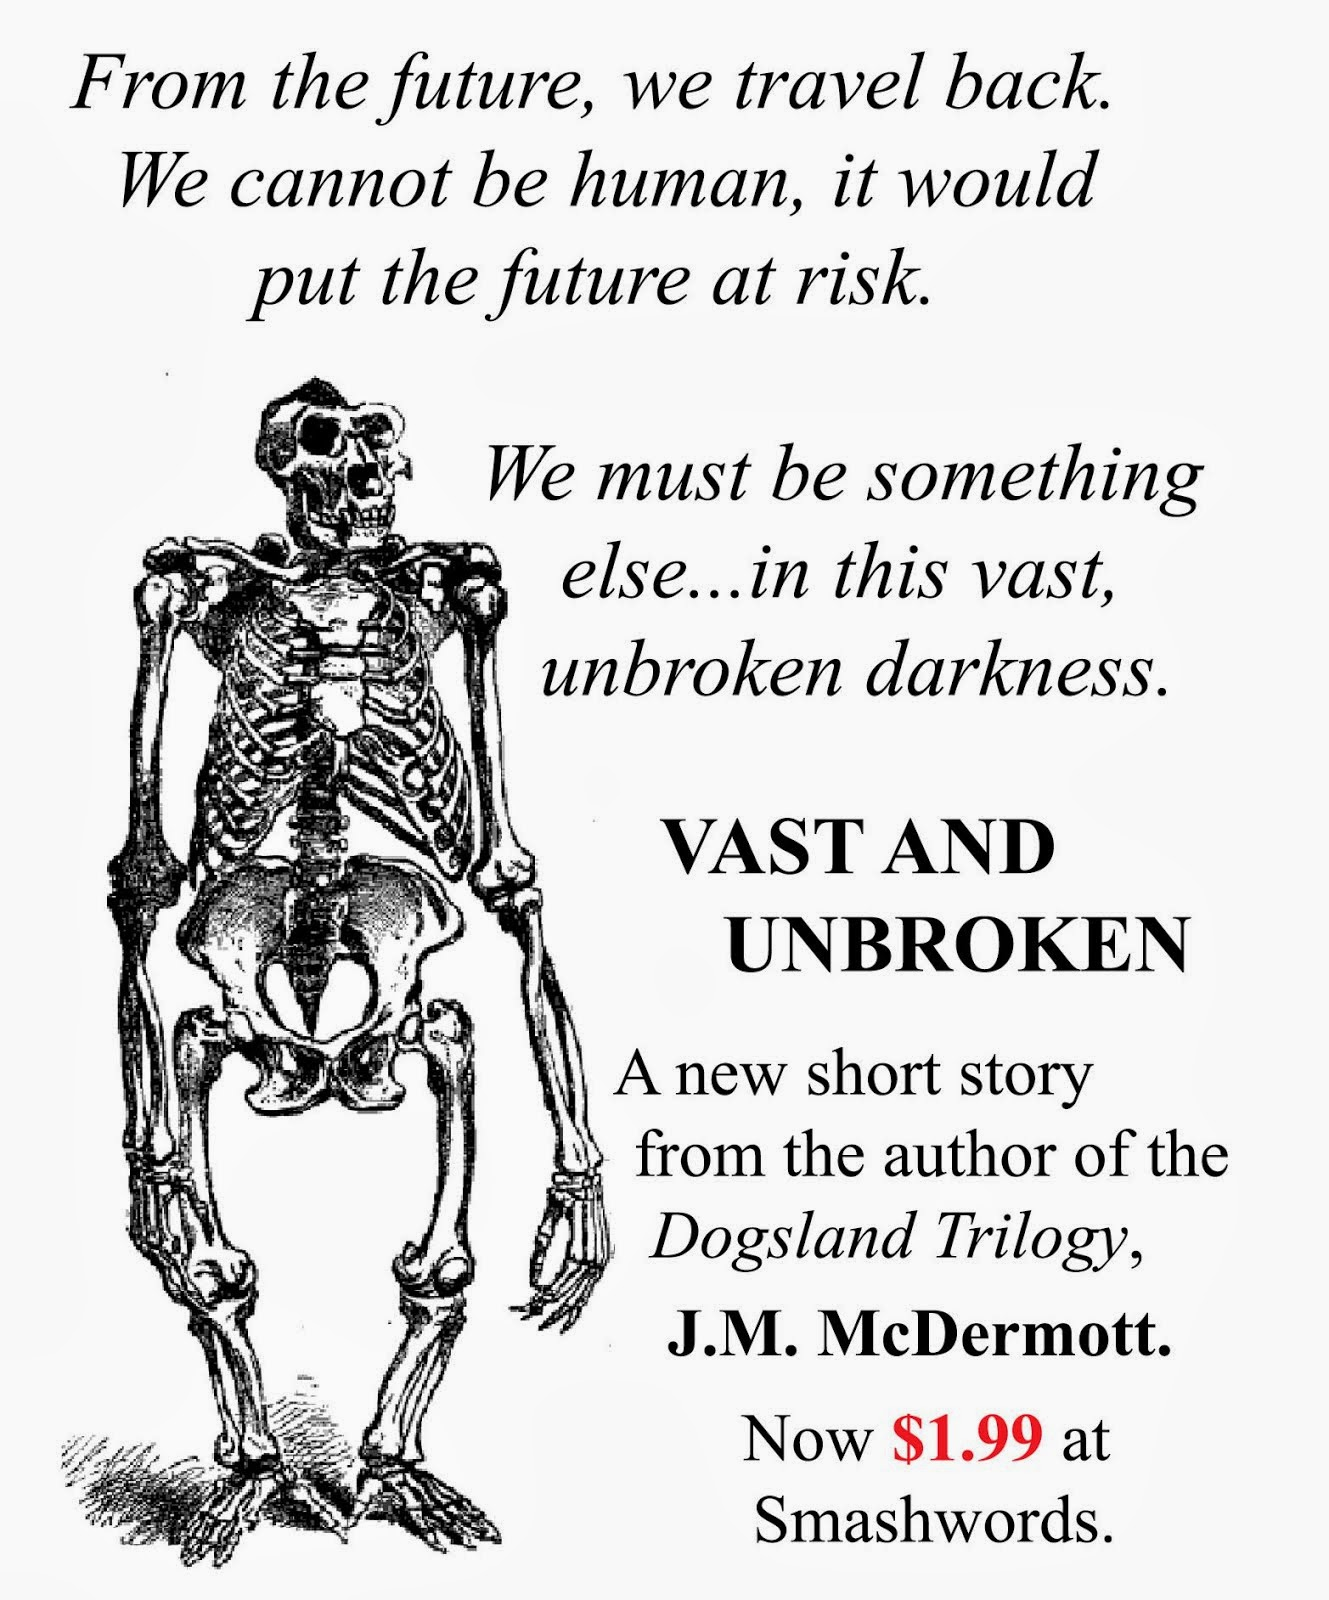 Vast and Unbroken at Smashwords!